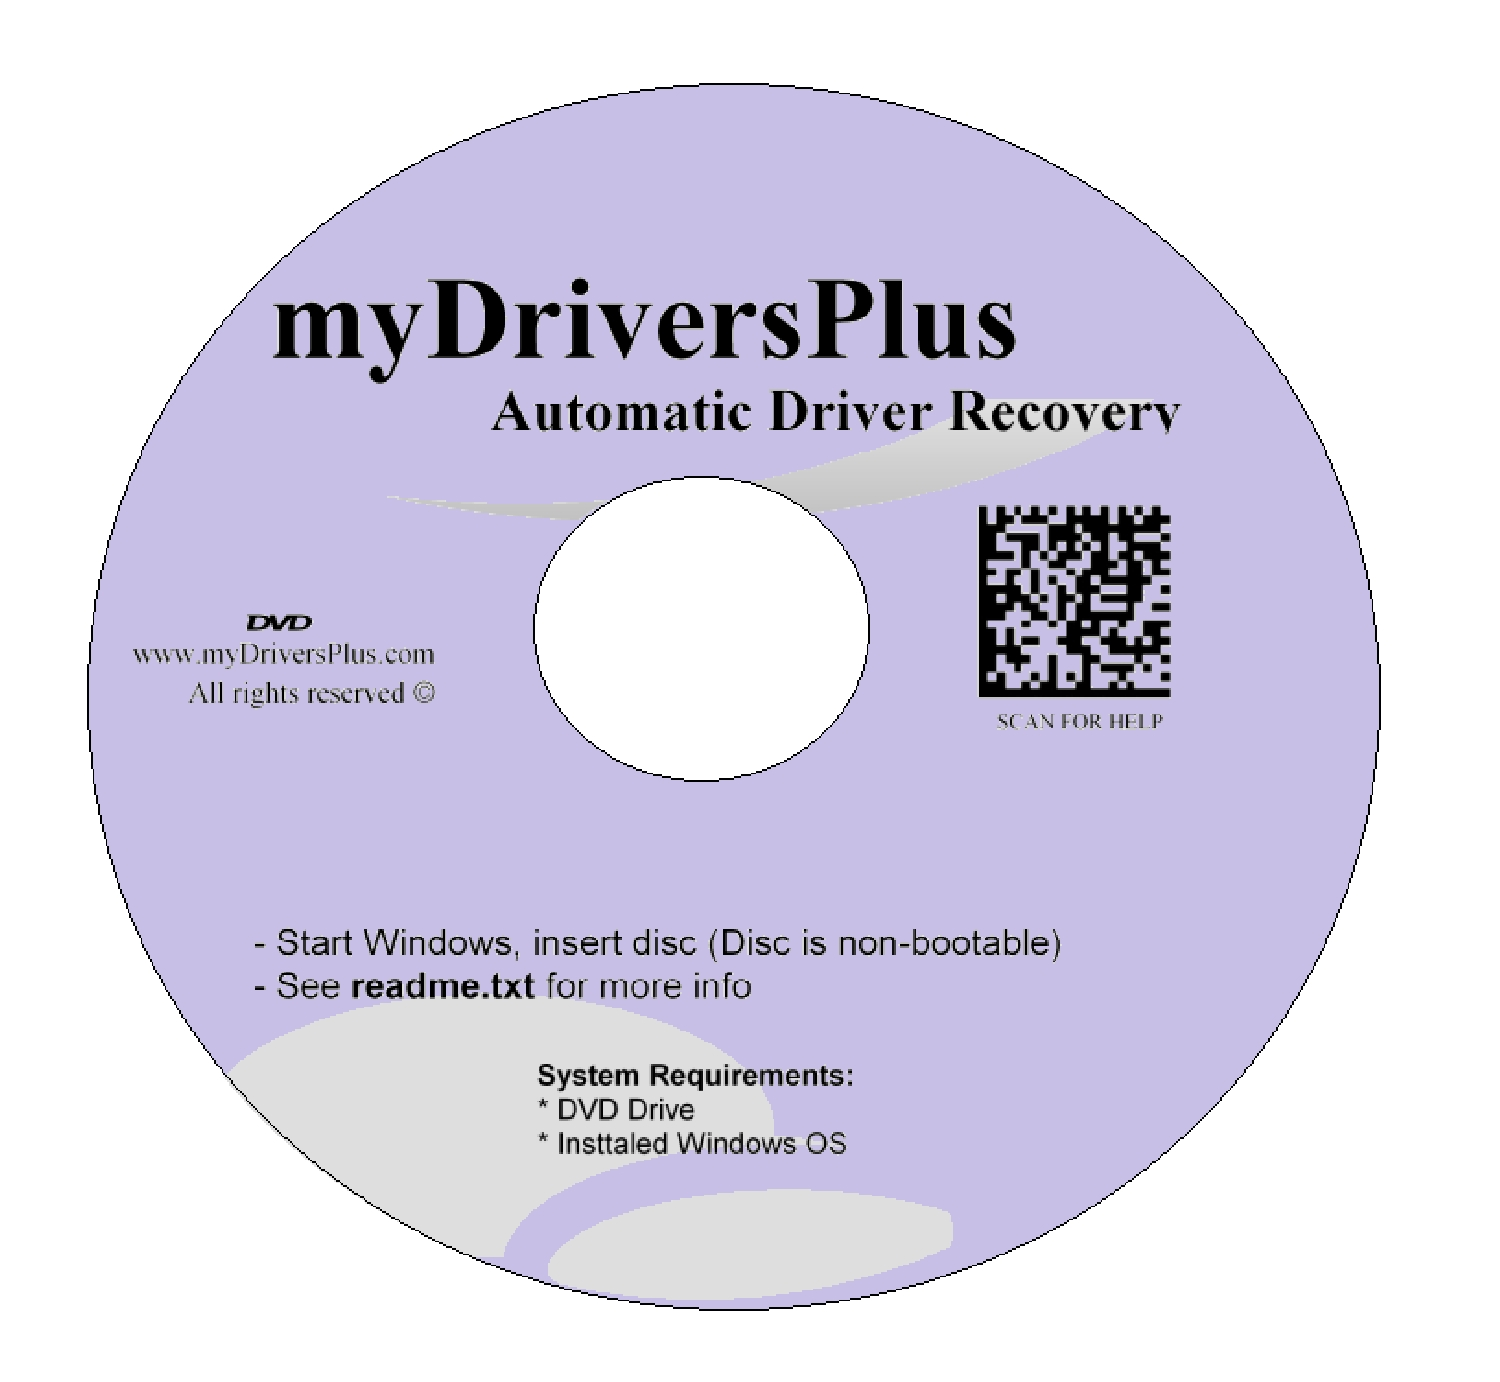 Acer TravelMate 5740G Drivers Recovery Restore Resource Utilities Software with Automatic One-Click Installer Unattended for Internet, Wi-Fi, Ethernet, Video, Sound, Audio, USB, Devices, Chipset ...(